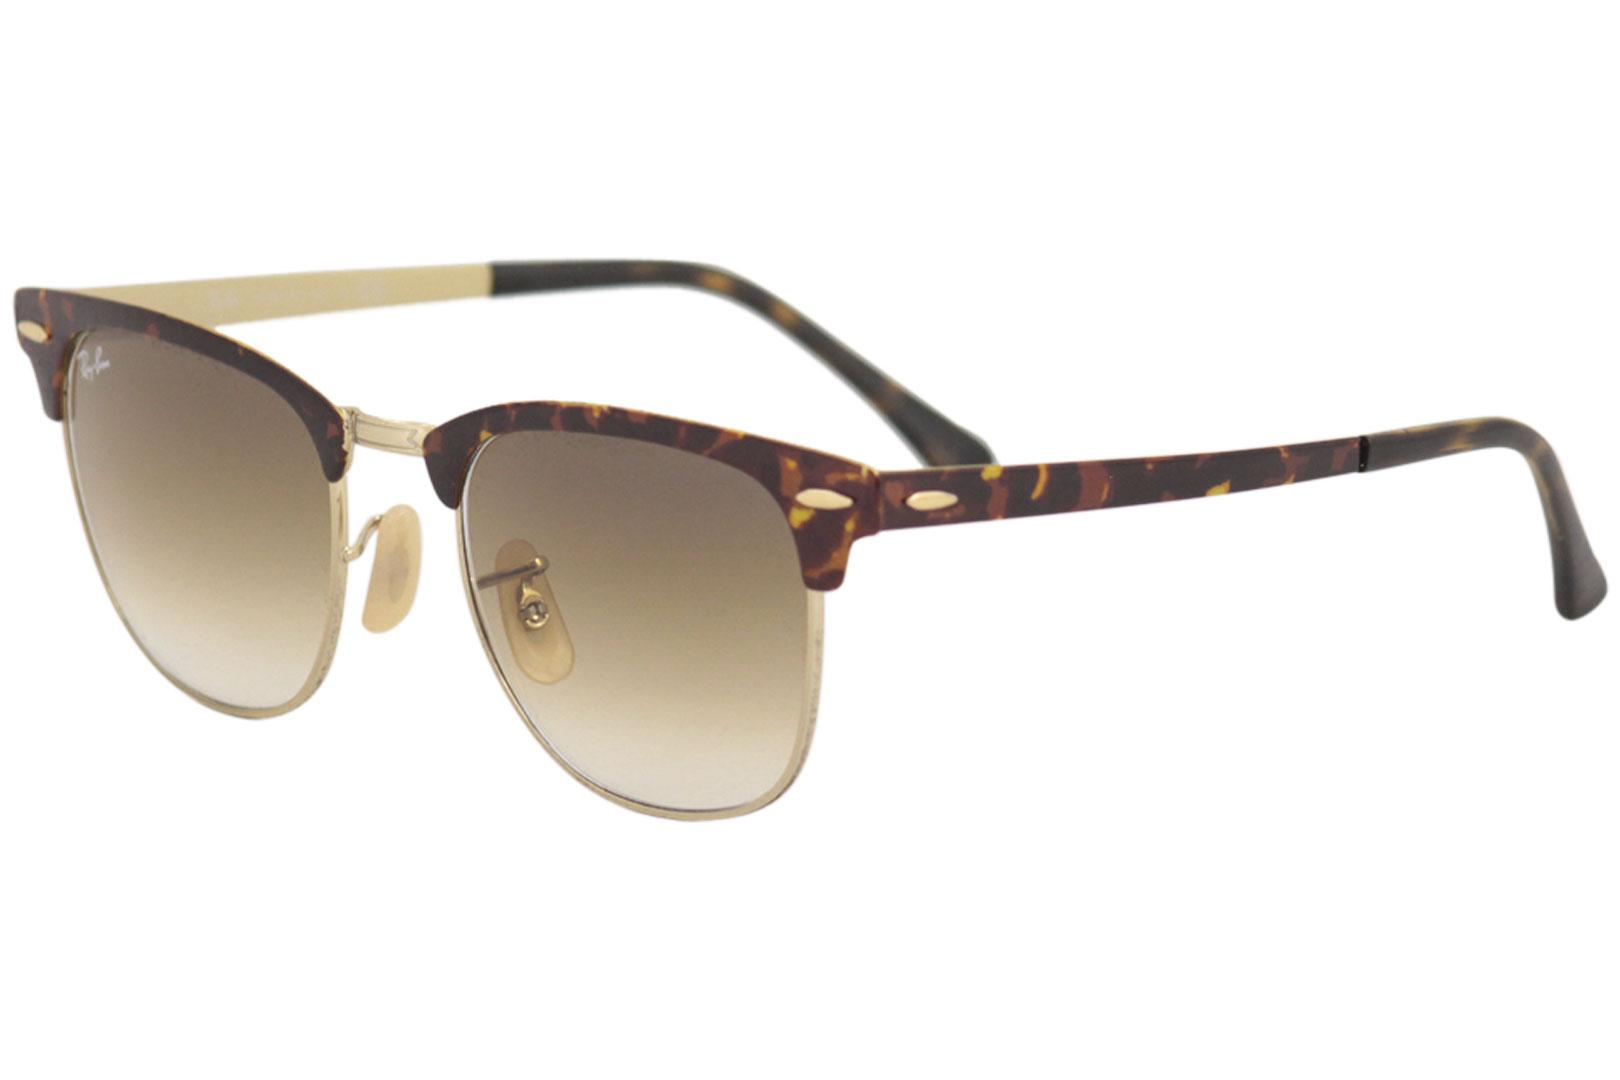 47089013ac Ray Ban Clubmaster RB3716 3716 9008 51 Havana Gold Brown RayBan ...